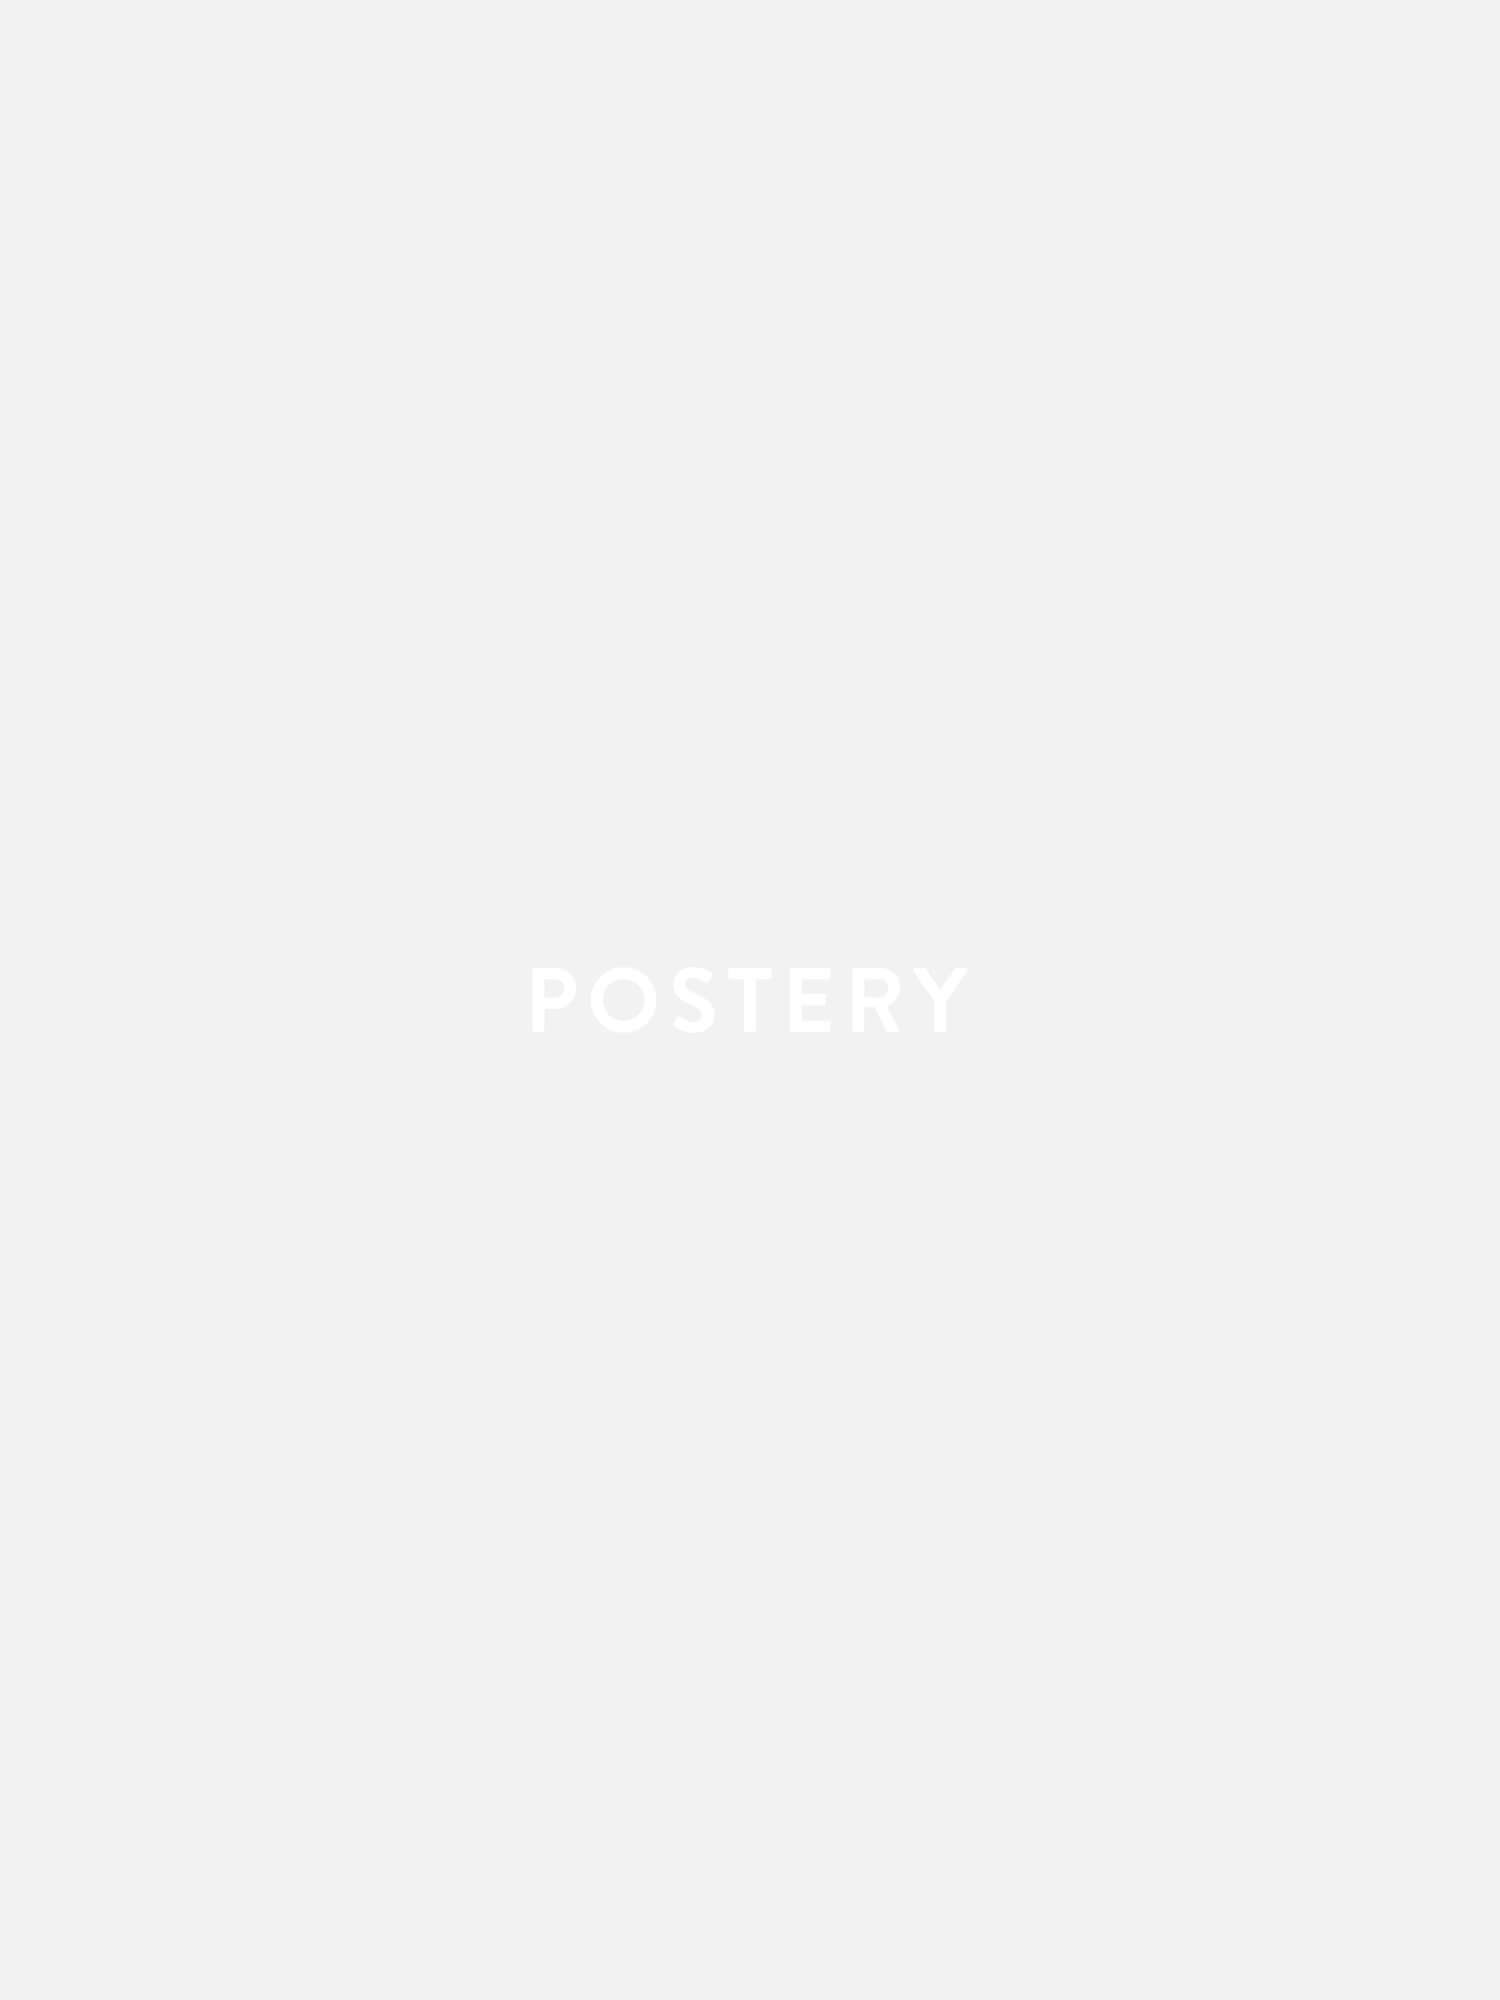 Abstract Sand Dunes Poster